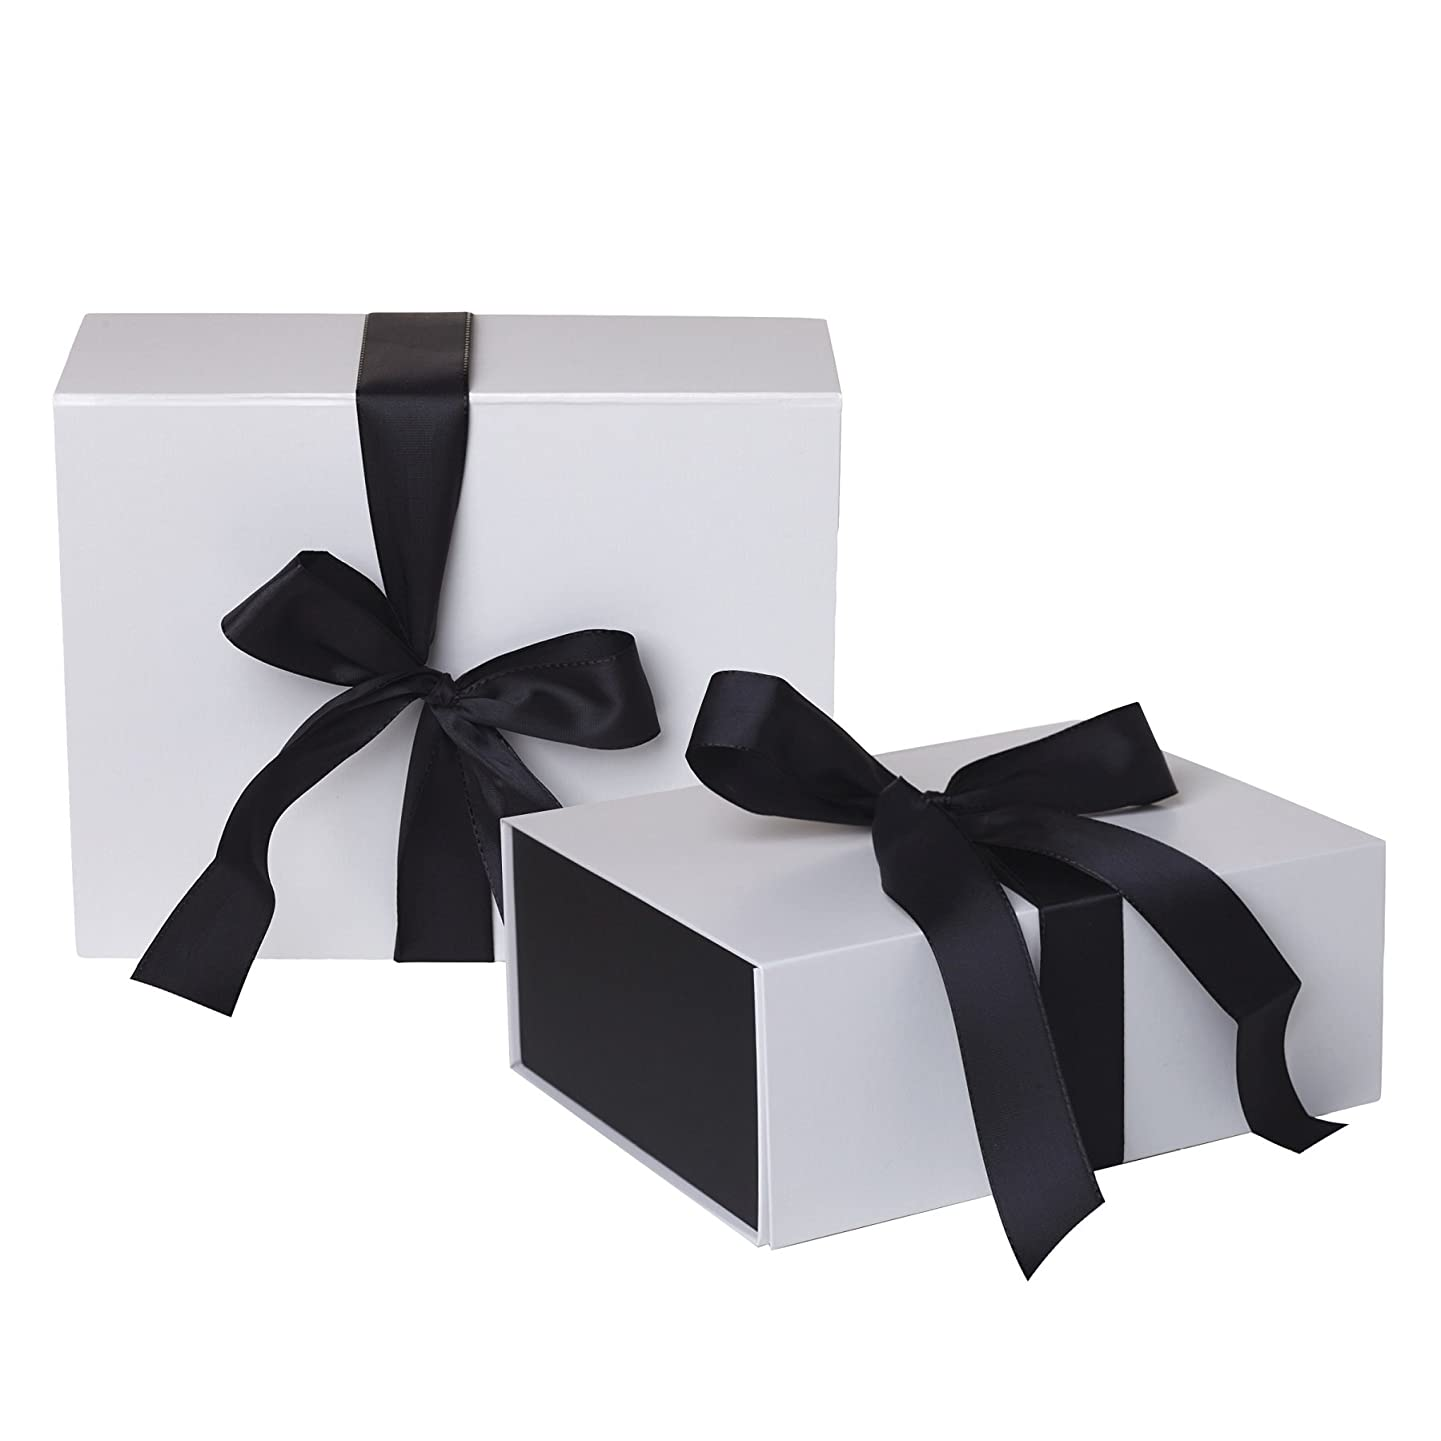 Jillson Roberts 4-Count Small Ribbon-Tie Closure Gift Boxes, Sophisticate White Matte